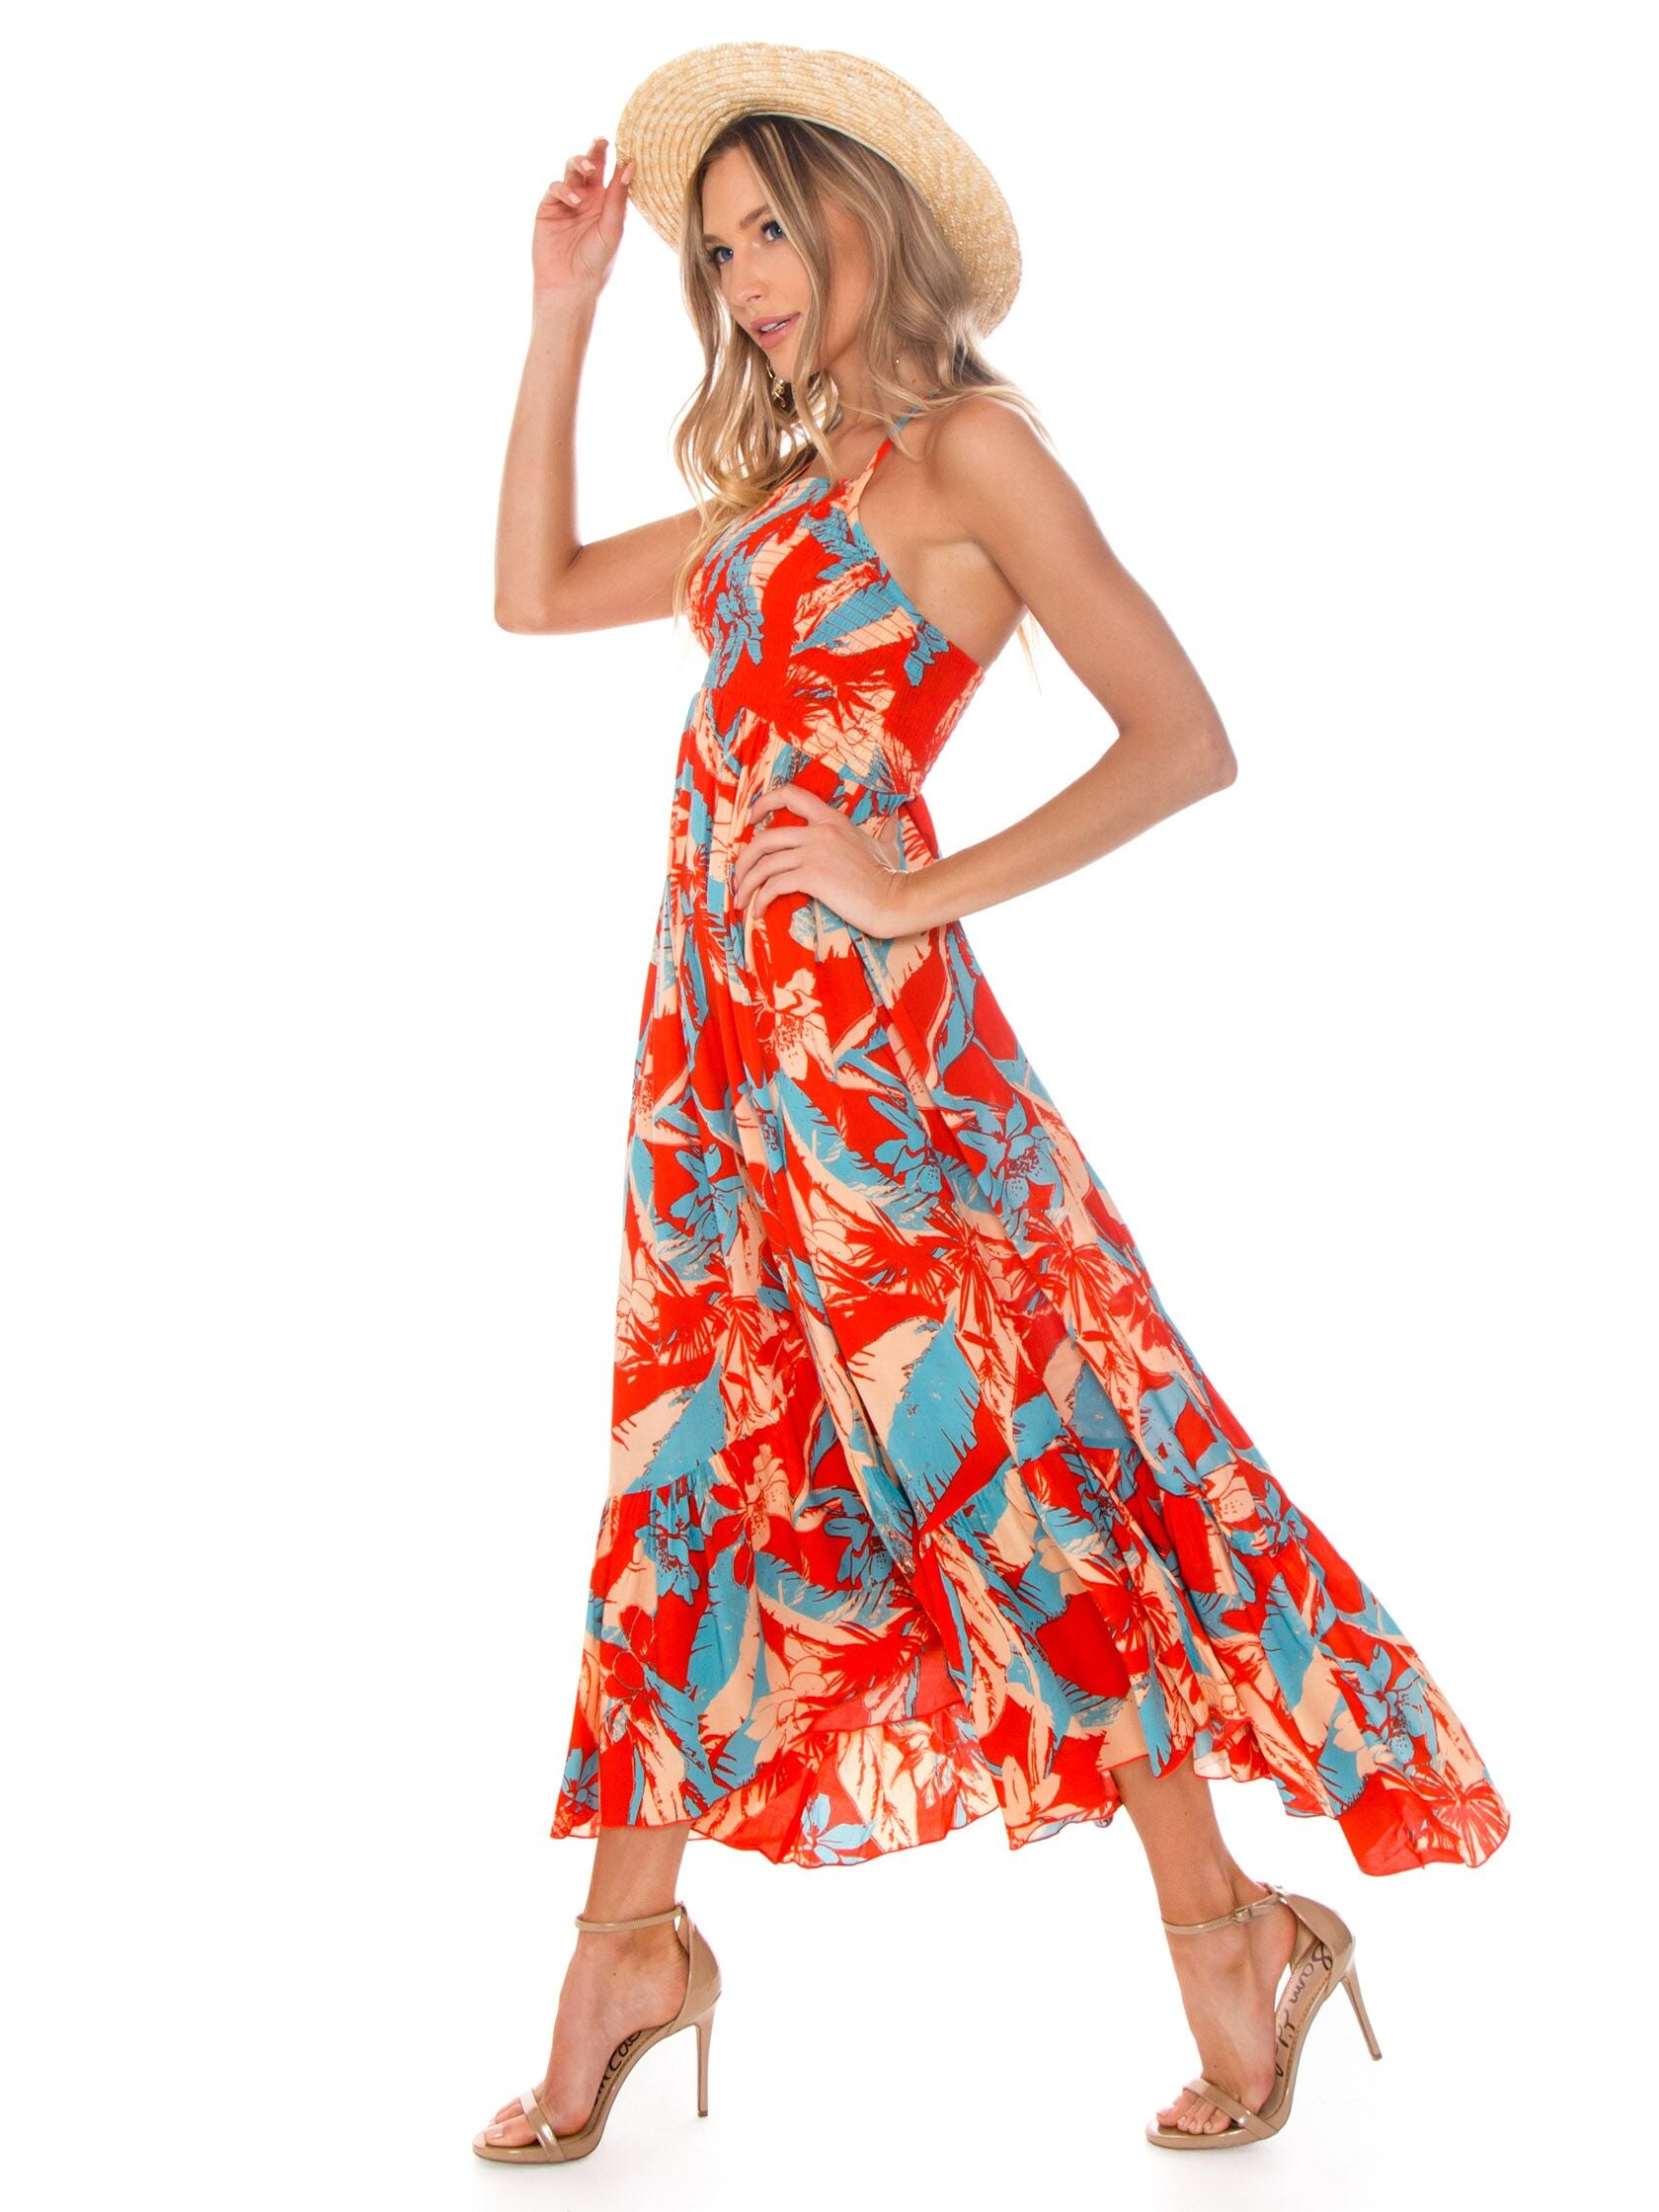 Woman wearing a dress rental from Free People called Heat Wave Printed Maxi